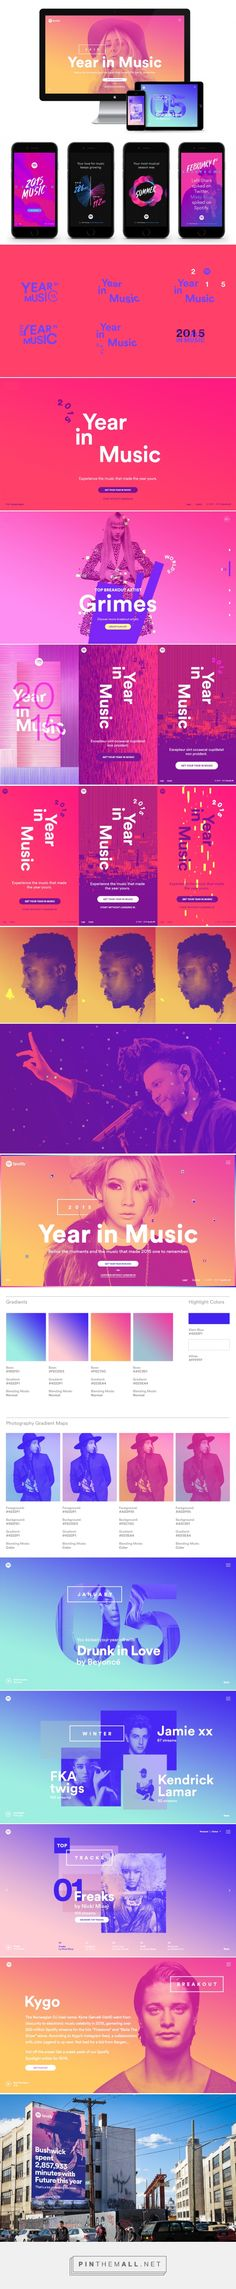 Stinkdigital - Spotify - Year in Music 2015